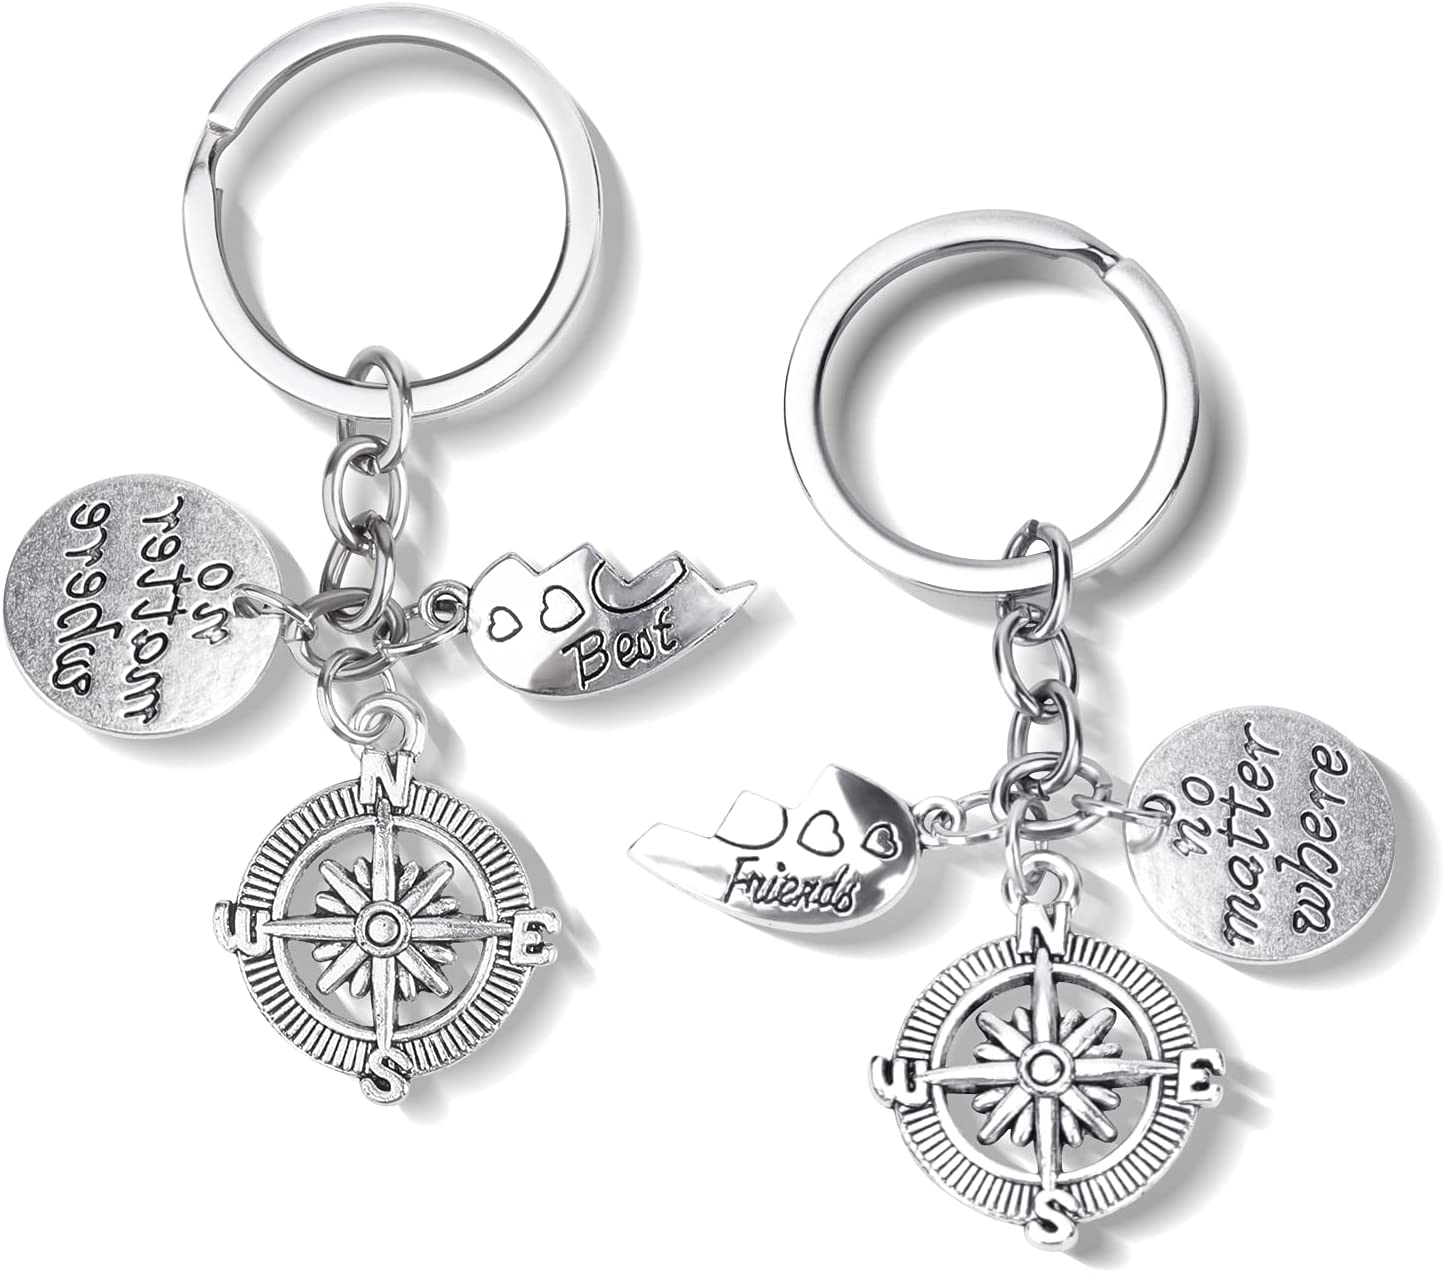 SUMKUMY 2PCs Keyring Friendship Gifts No Matter Where Keychain Long Distance Gifts Keychain Set Matching Heart Puzzle Keychain for Friends Sisters